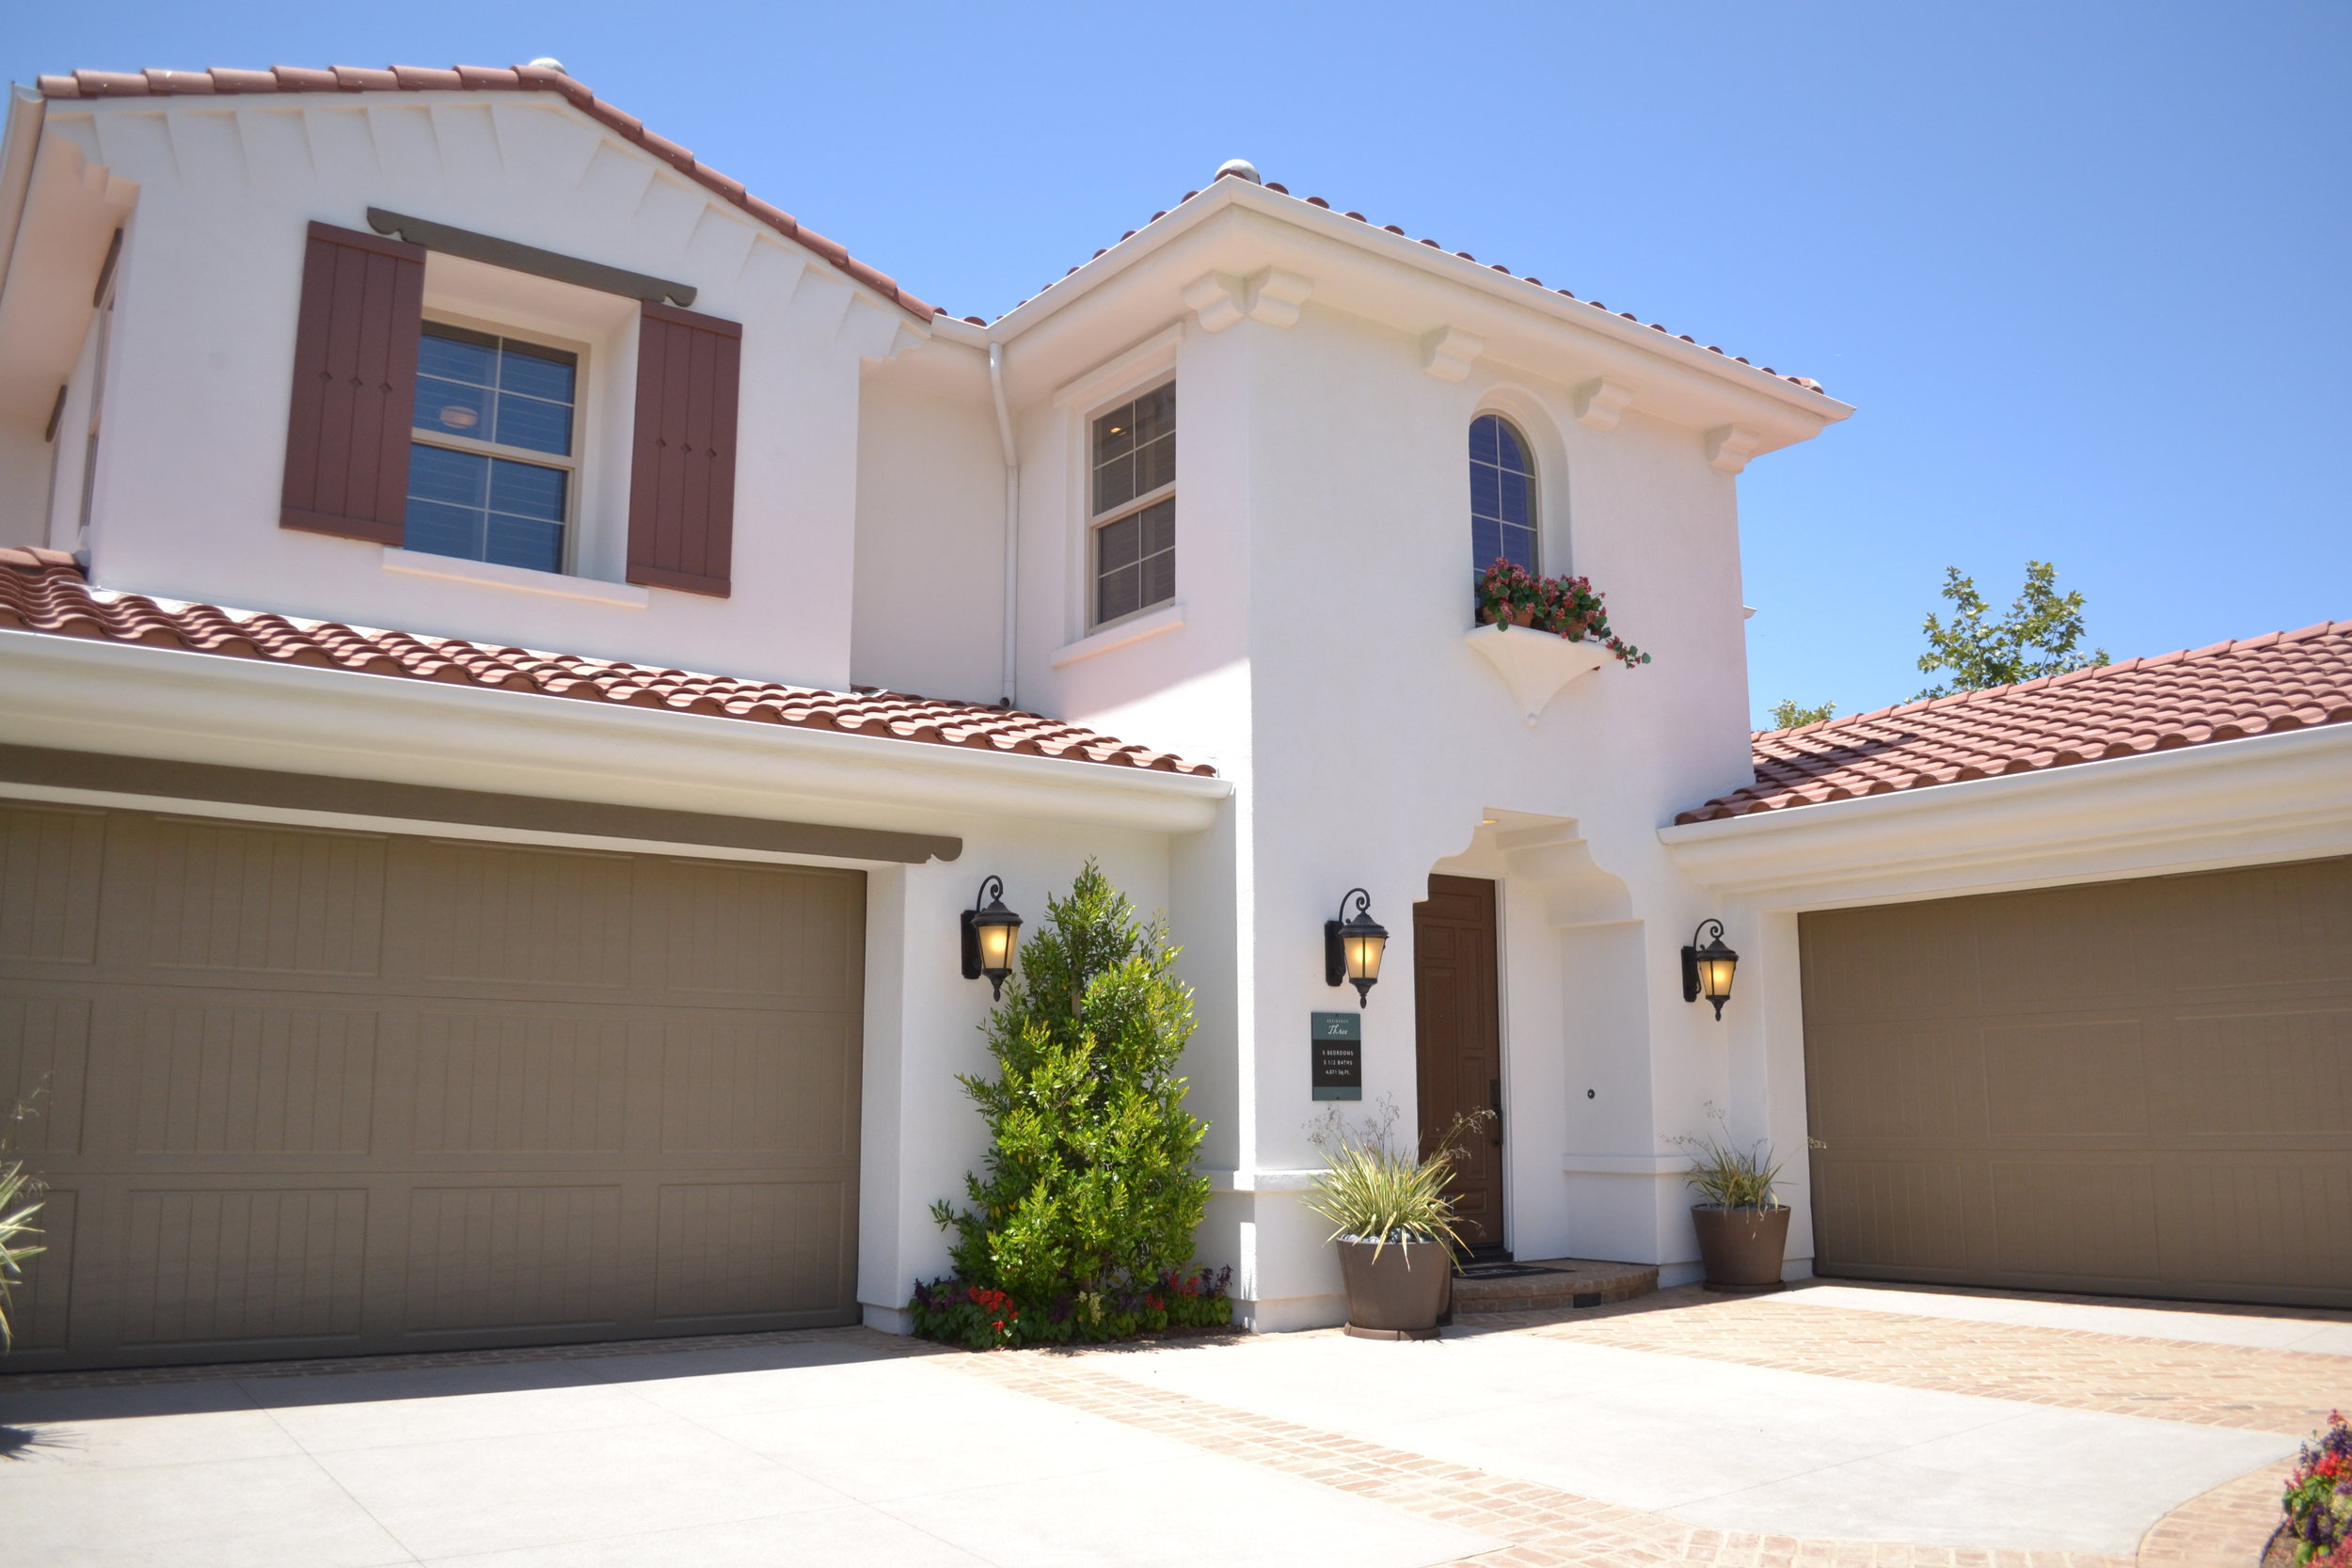 SELL MY HOME -